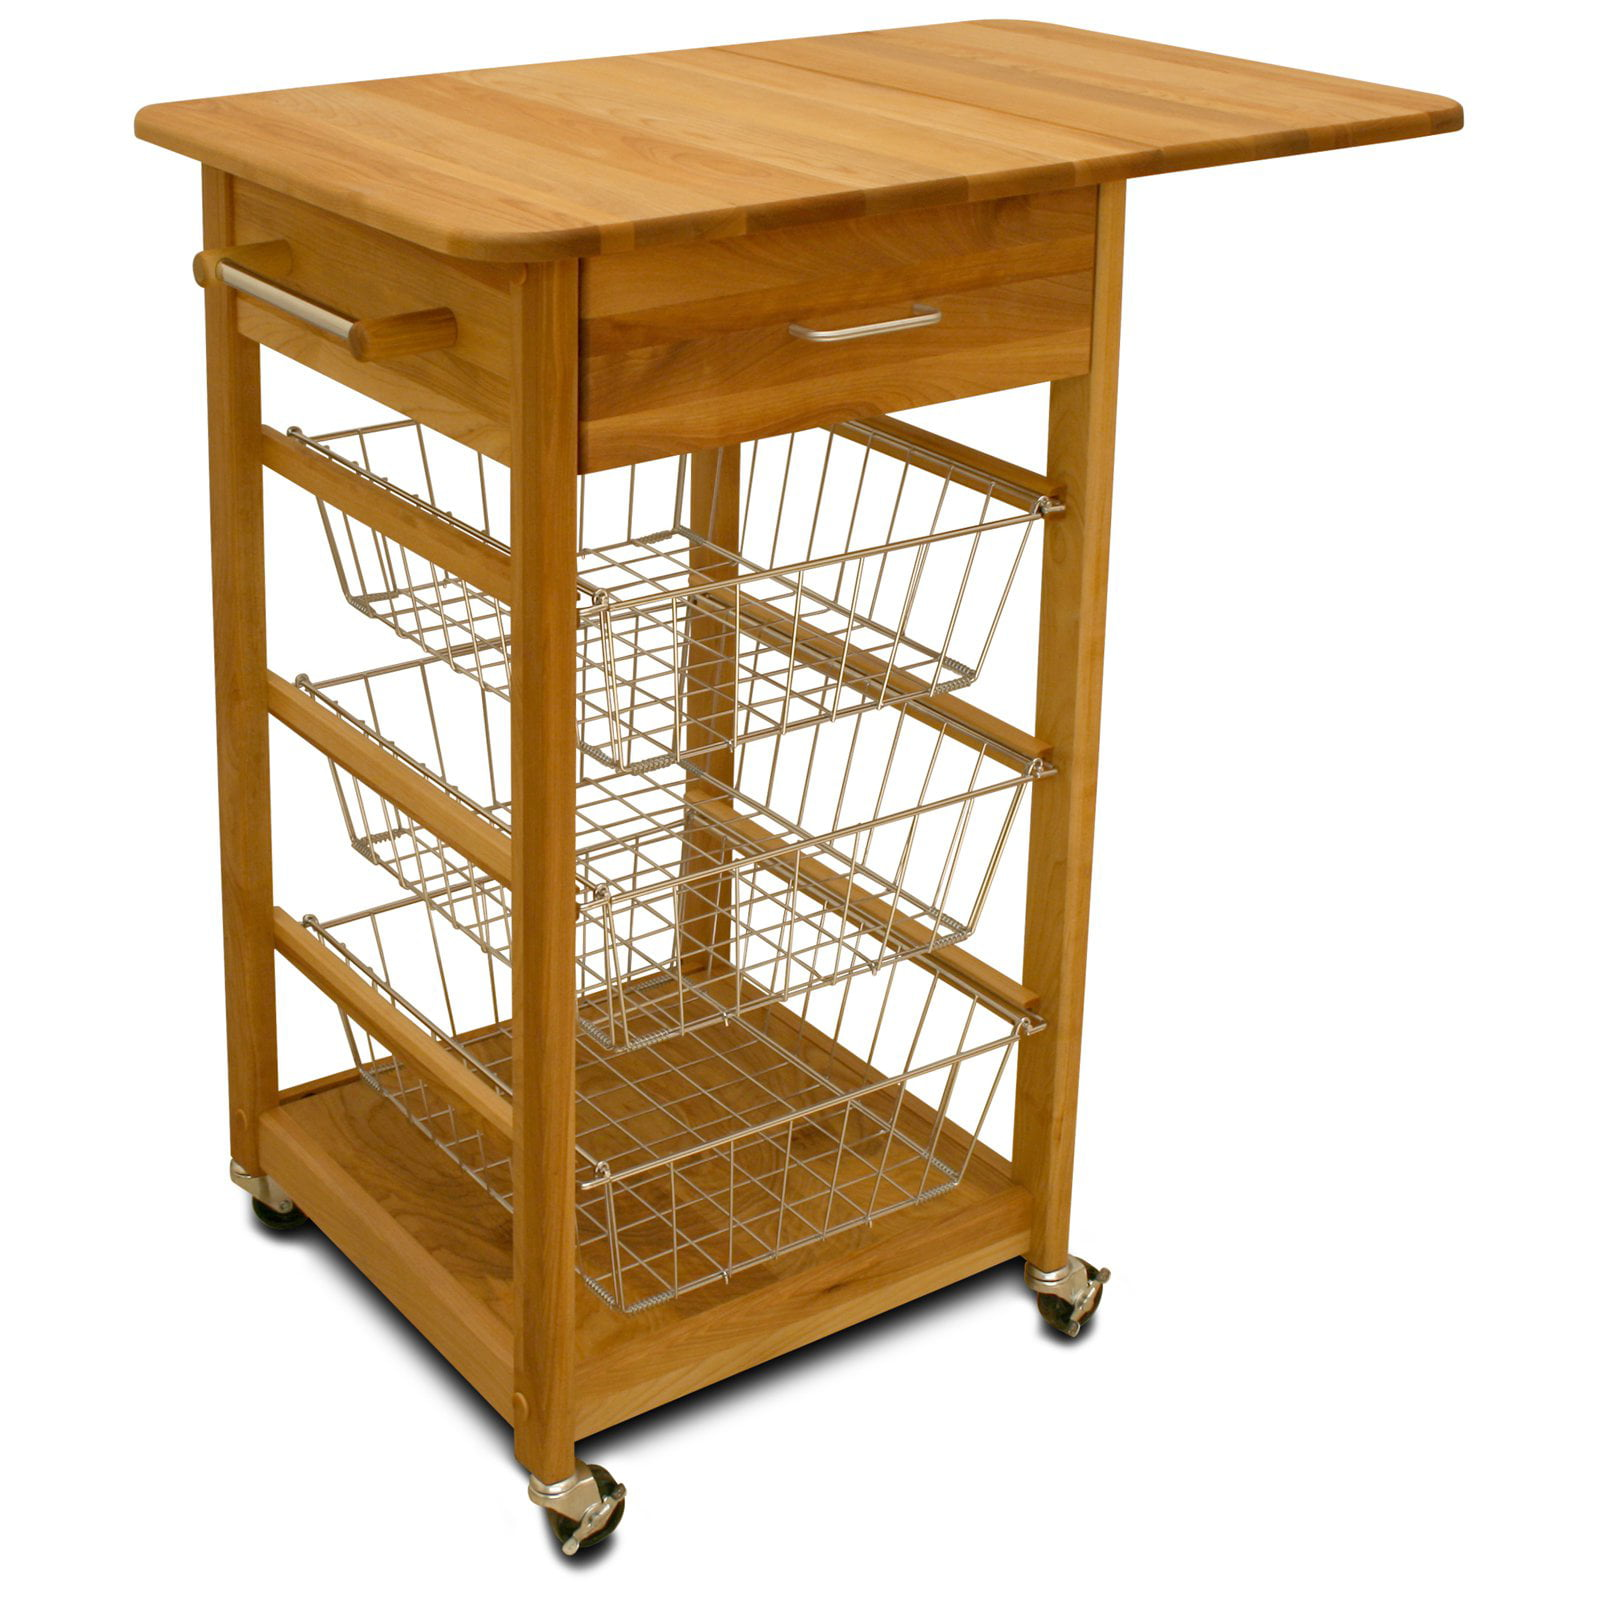 Chrome Wire Basket Kitchen Cart - Walmart.com on stand with baskets, hutch with baskets, kitchen island carts on wheels, rack with baskets, storage with baskets, kitchen carts lowe's, kitchen kart, roller carts with baskets, wire utility carts with baskets, cabinet with baskets, kitchen wire baskets, organizing with baskets, kitchen shelf baskets, kitchen with cozy fireplace, kitchen carts on sale, kitchen carts ikea utility, kitchen carts for small kitchens, kitchen cabinet slide out baskets, kitchen island with butcher block top, kitchen utility carts at target,